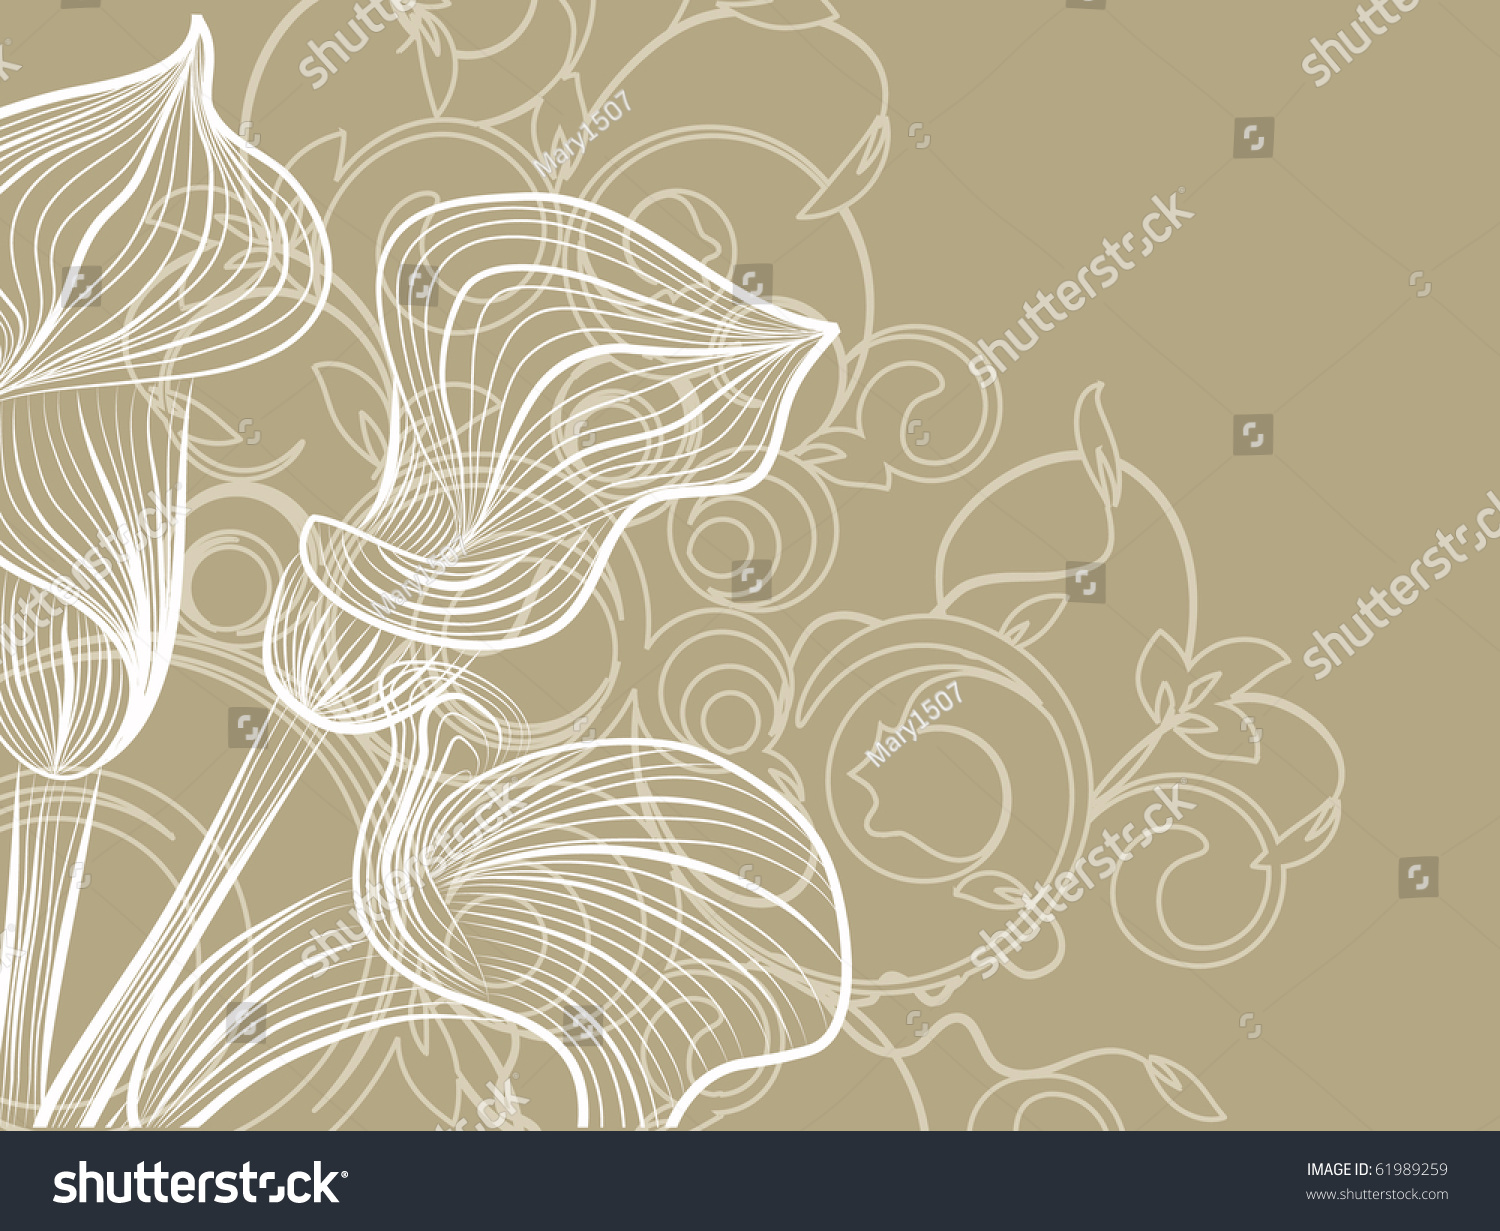 Visiting Card Decoratively Abstraction Banner Design Stock